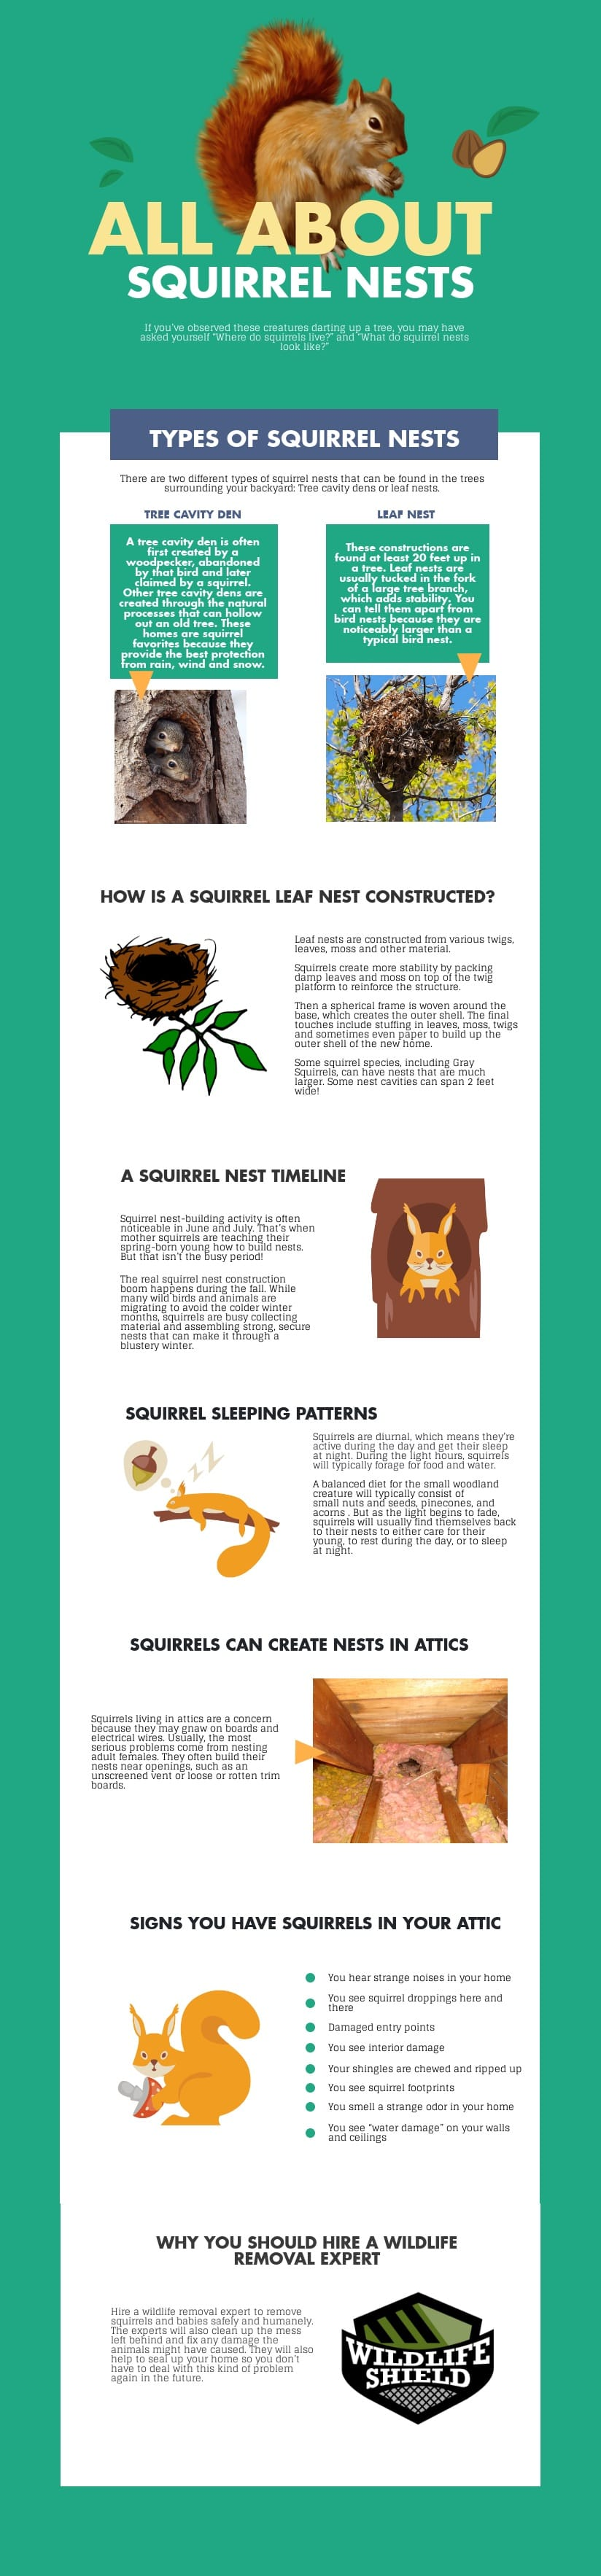 How Squirrels Build Their Nests - Infographic